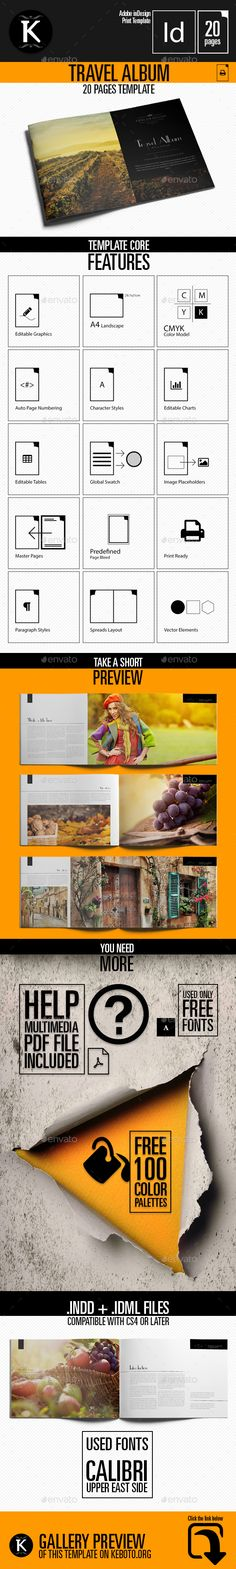 CMYK Print Job Print Media Pinterest Shops, Color change and - profit and loss statement template free download